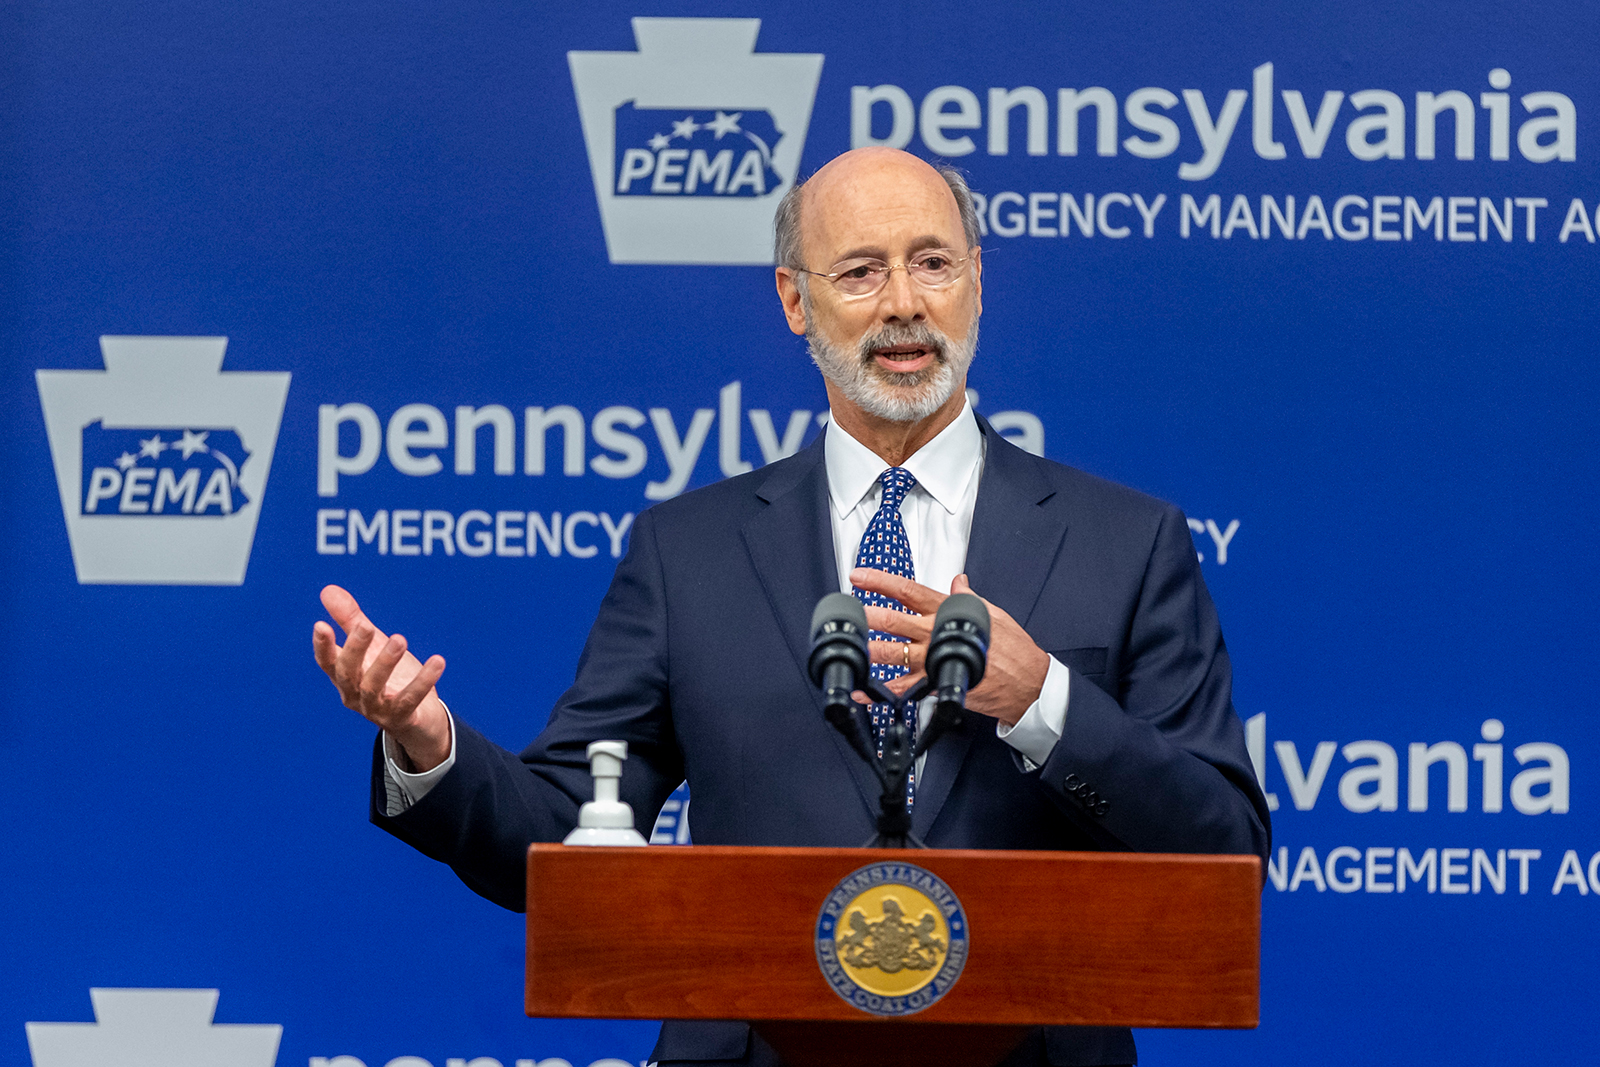 Gov. Tom Wolf meets with the media at The Pennsylvania Emergency Management Agency (PEMA) headquarters Harrisburg, Pennsylvania, on May 29.